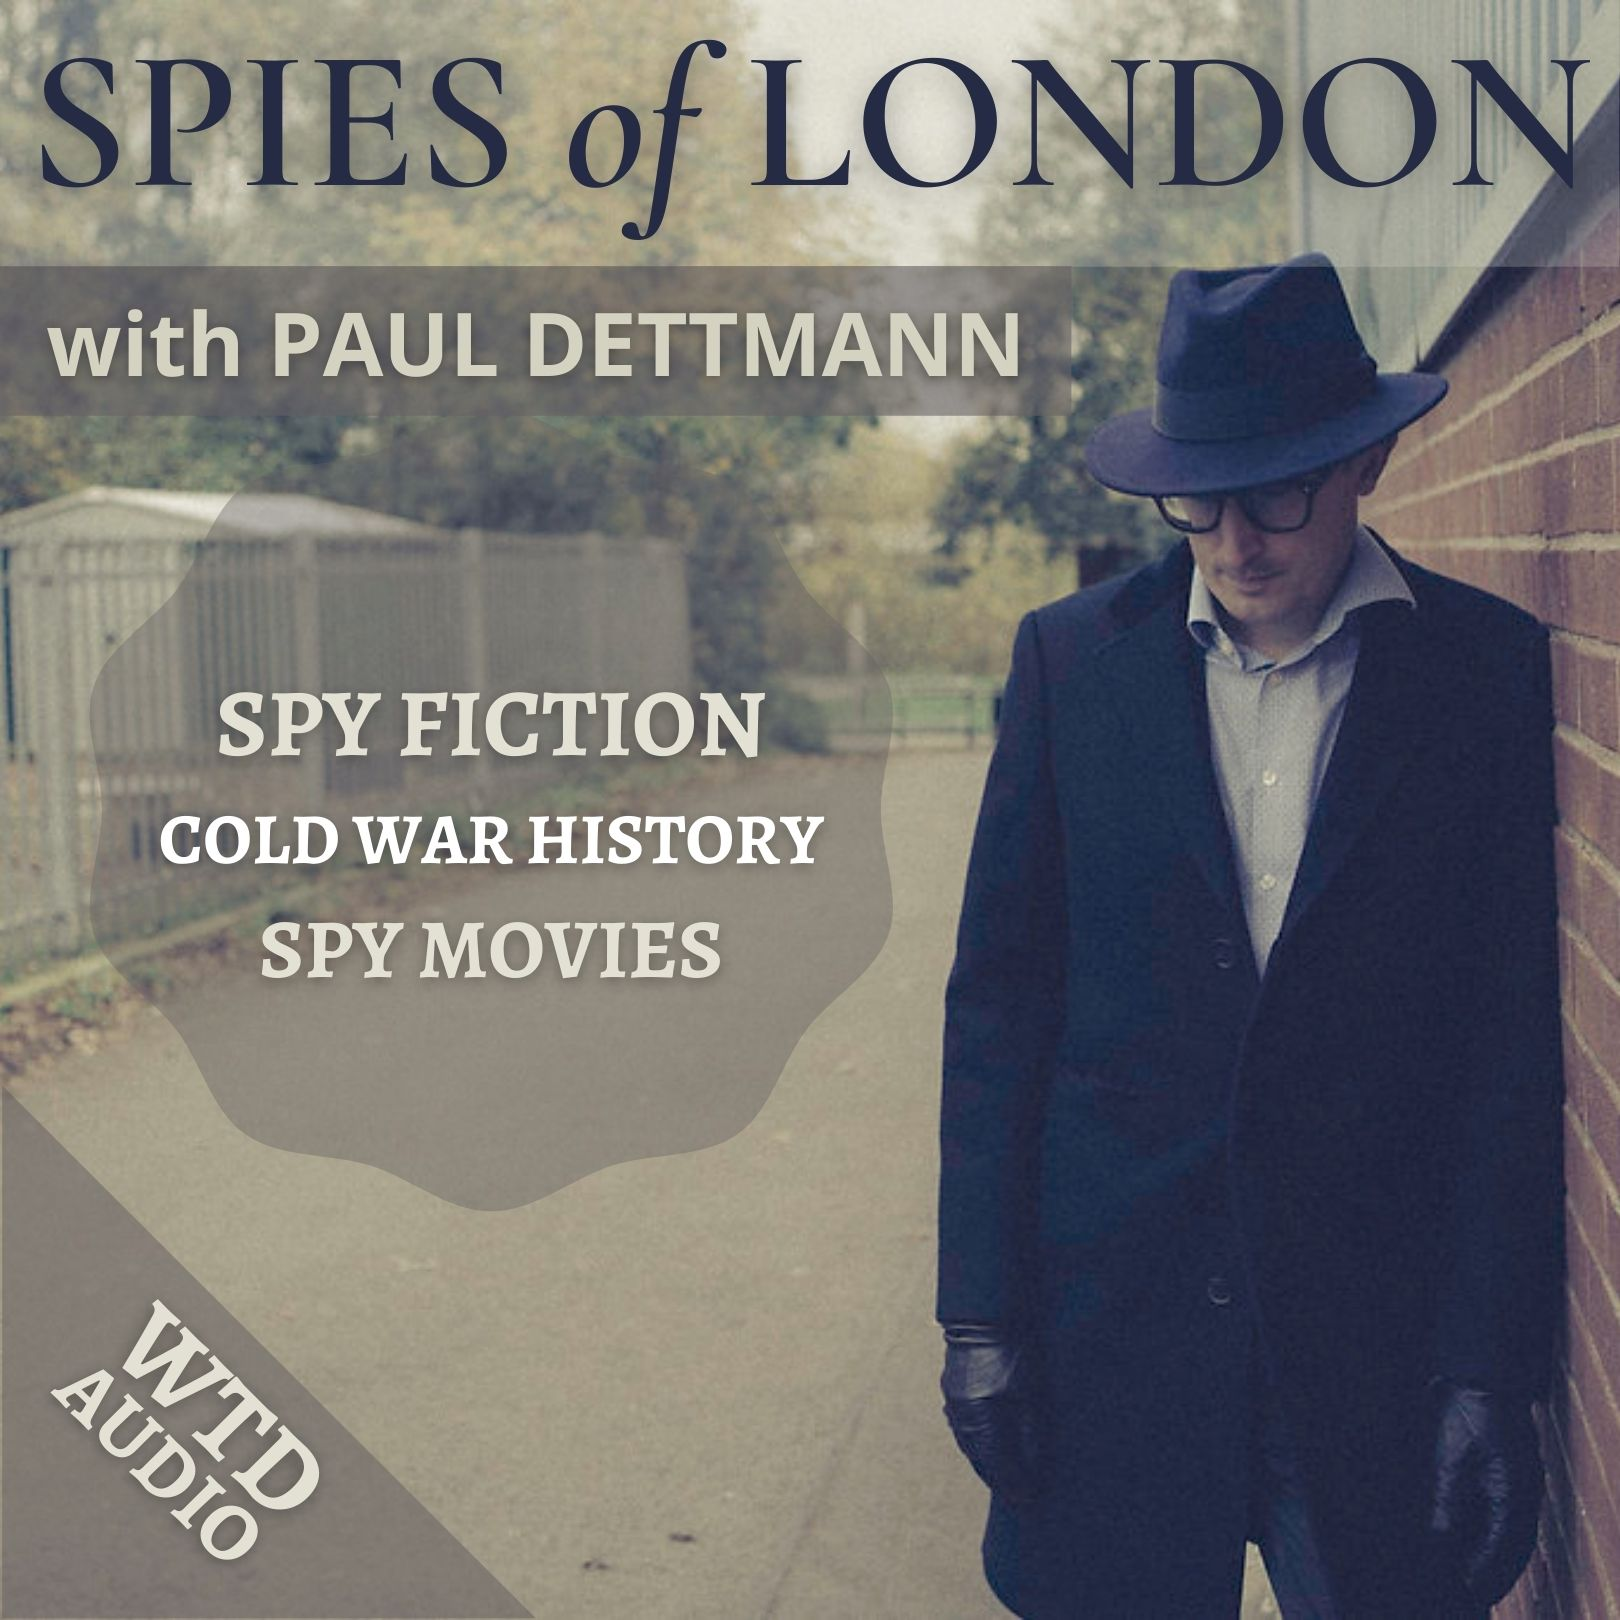 Spies of London